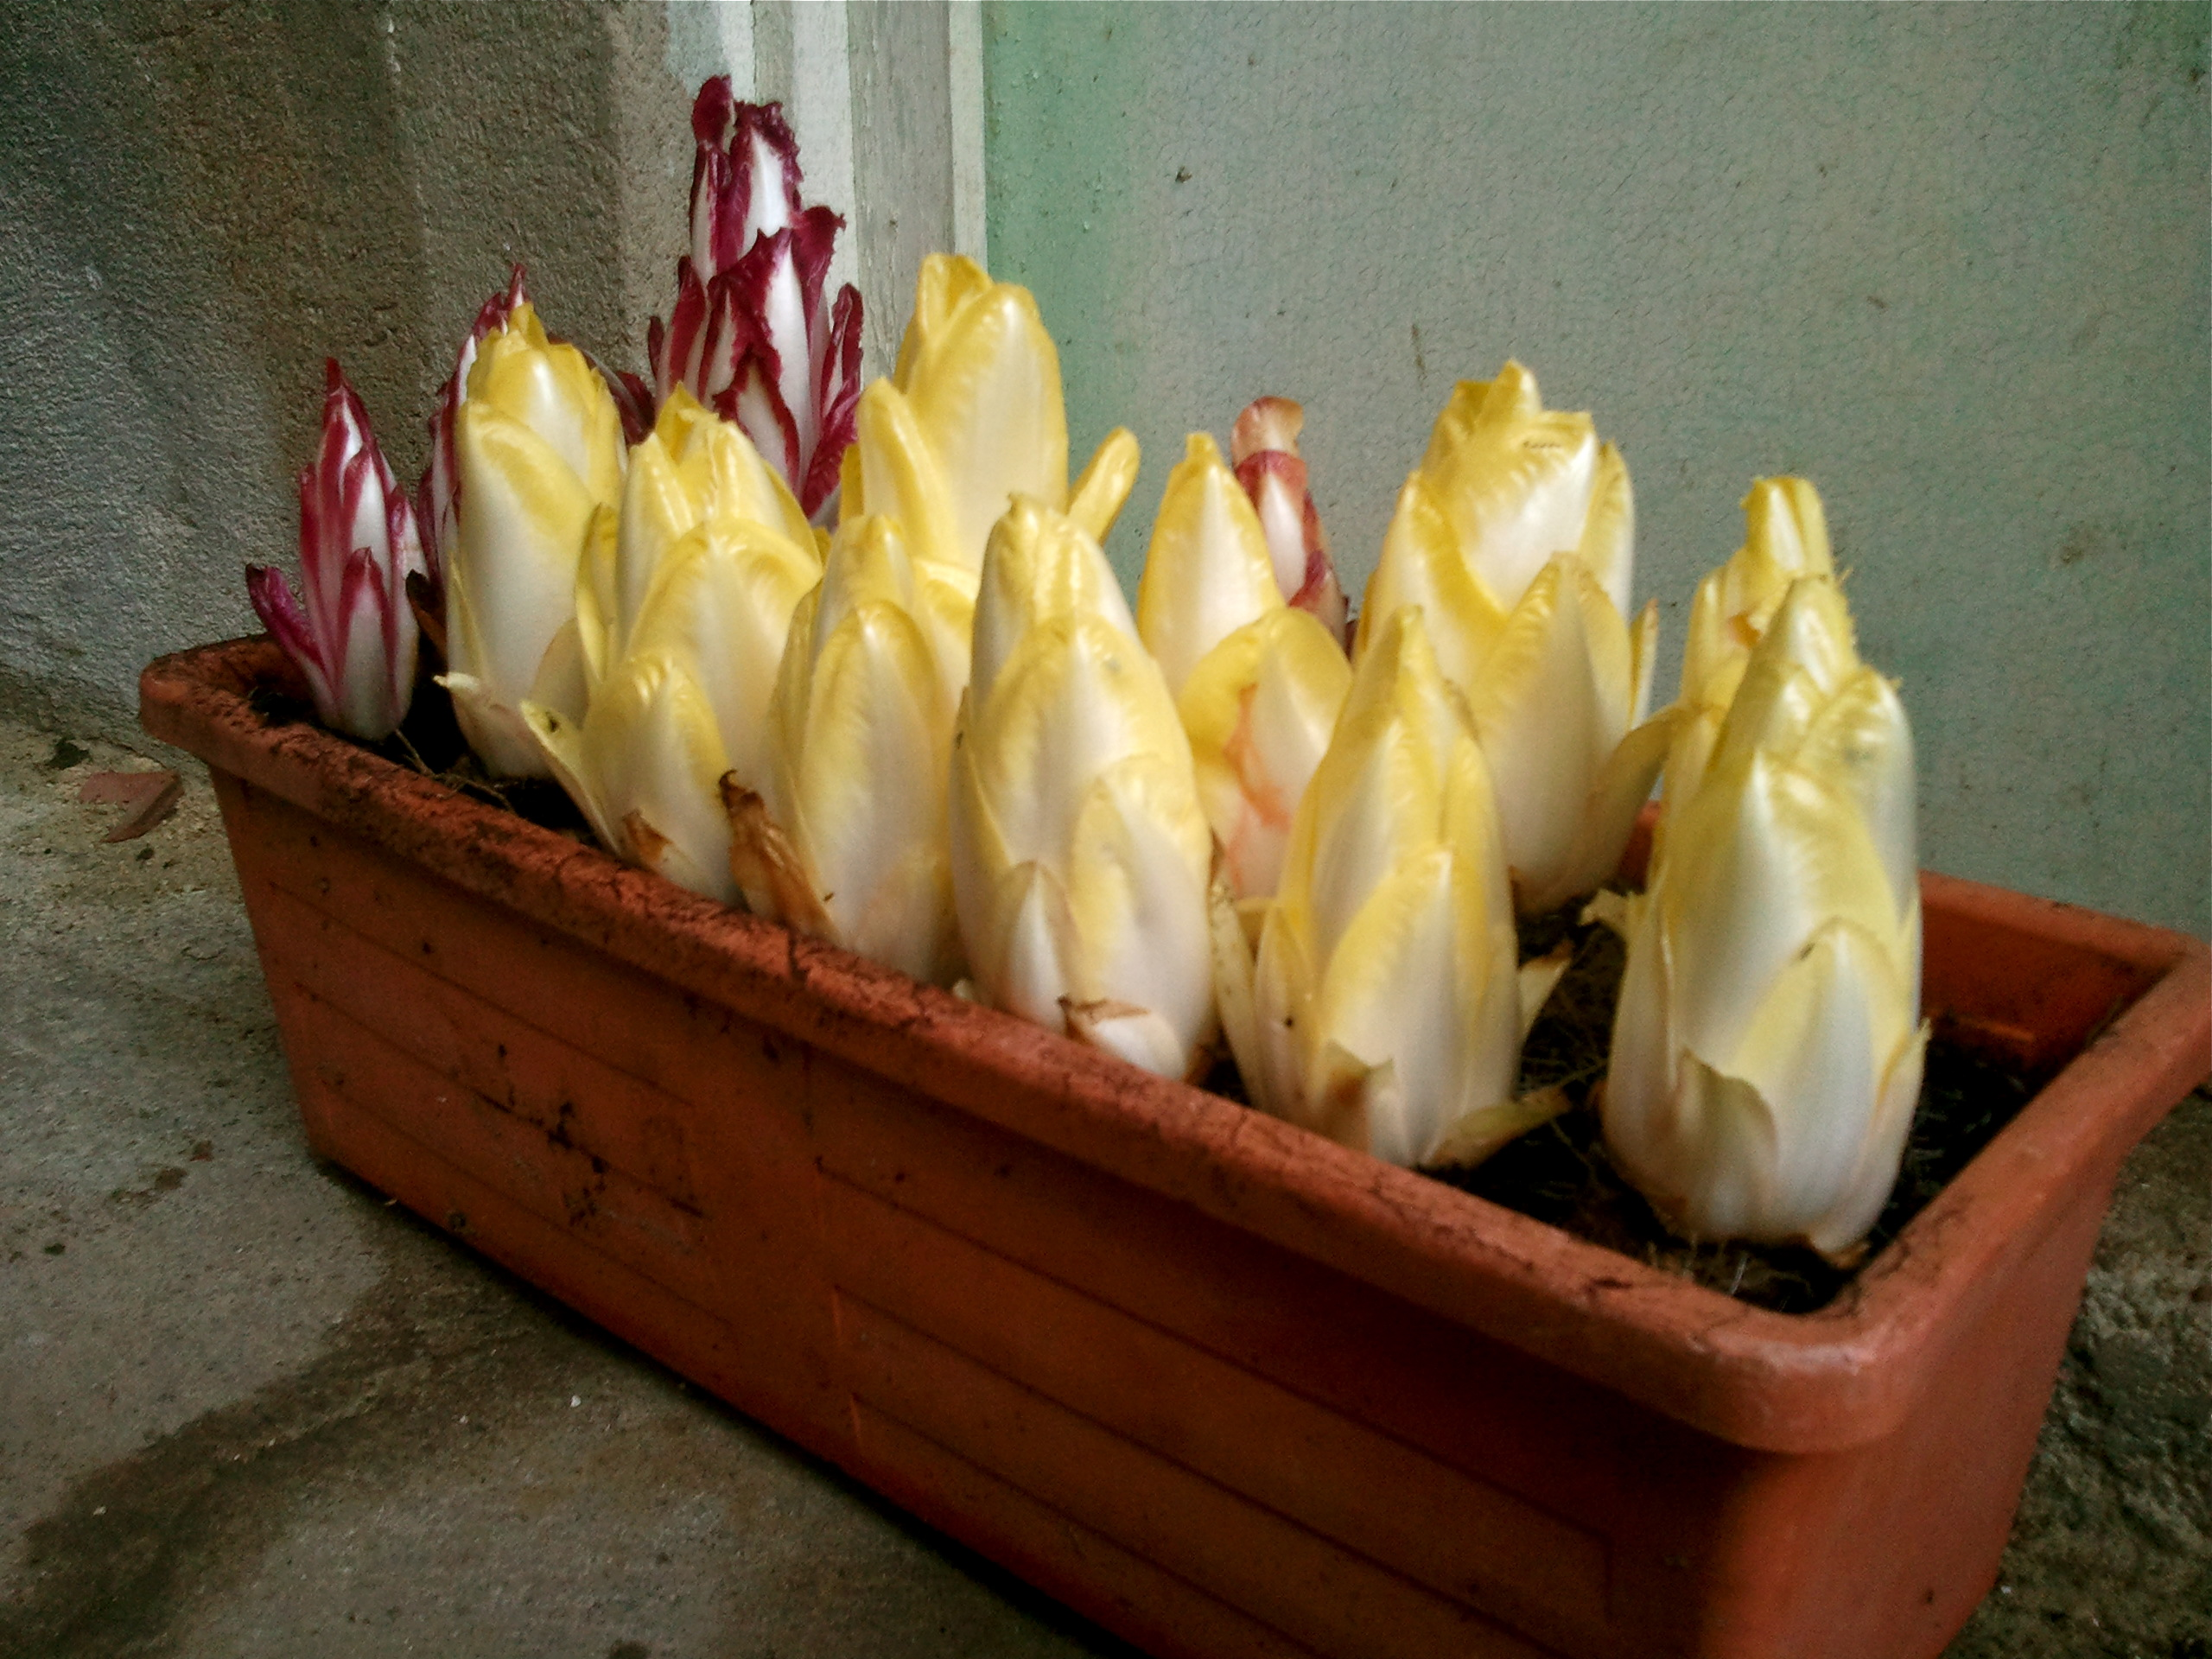 Produce superstars does belgian endive really come from belgium the macrochef - Growing french walnuts for a profit ...